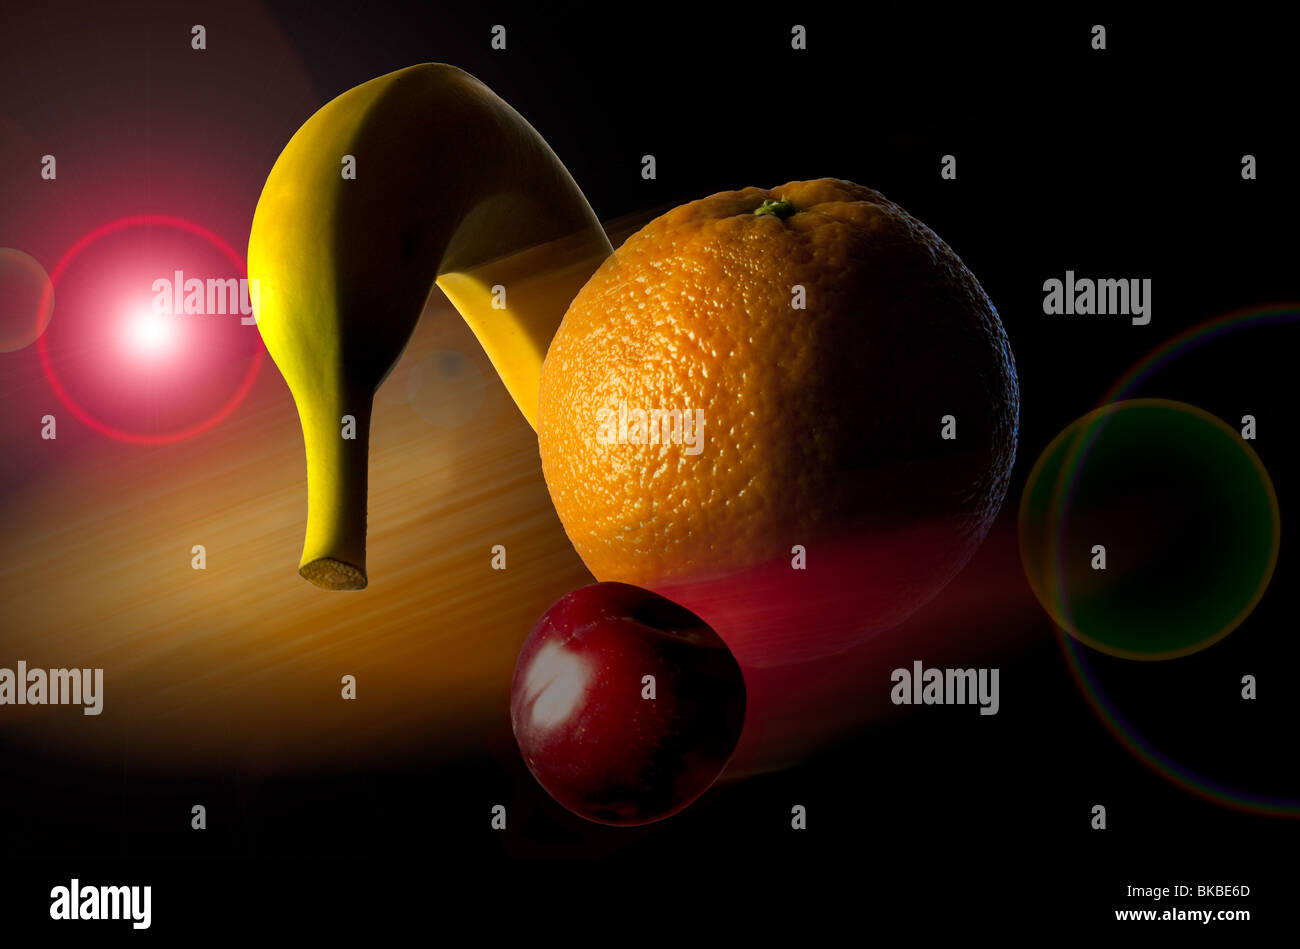 Fruit selection floating through space. Banana, orange and a plum collage set in outer space background. Abstract - Stock Image